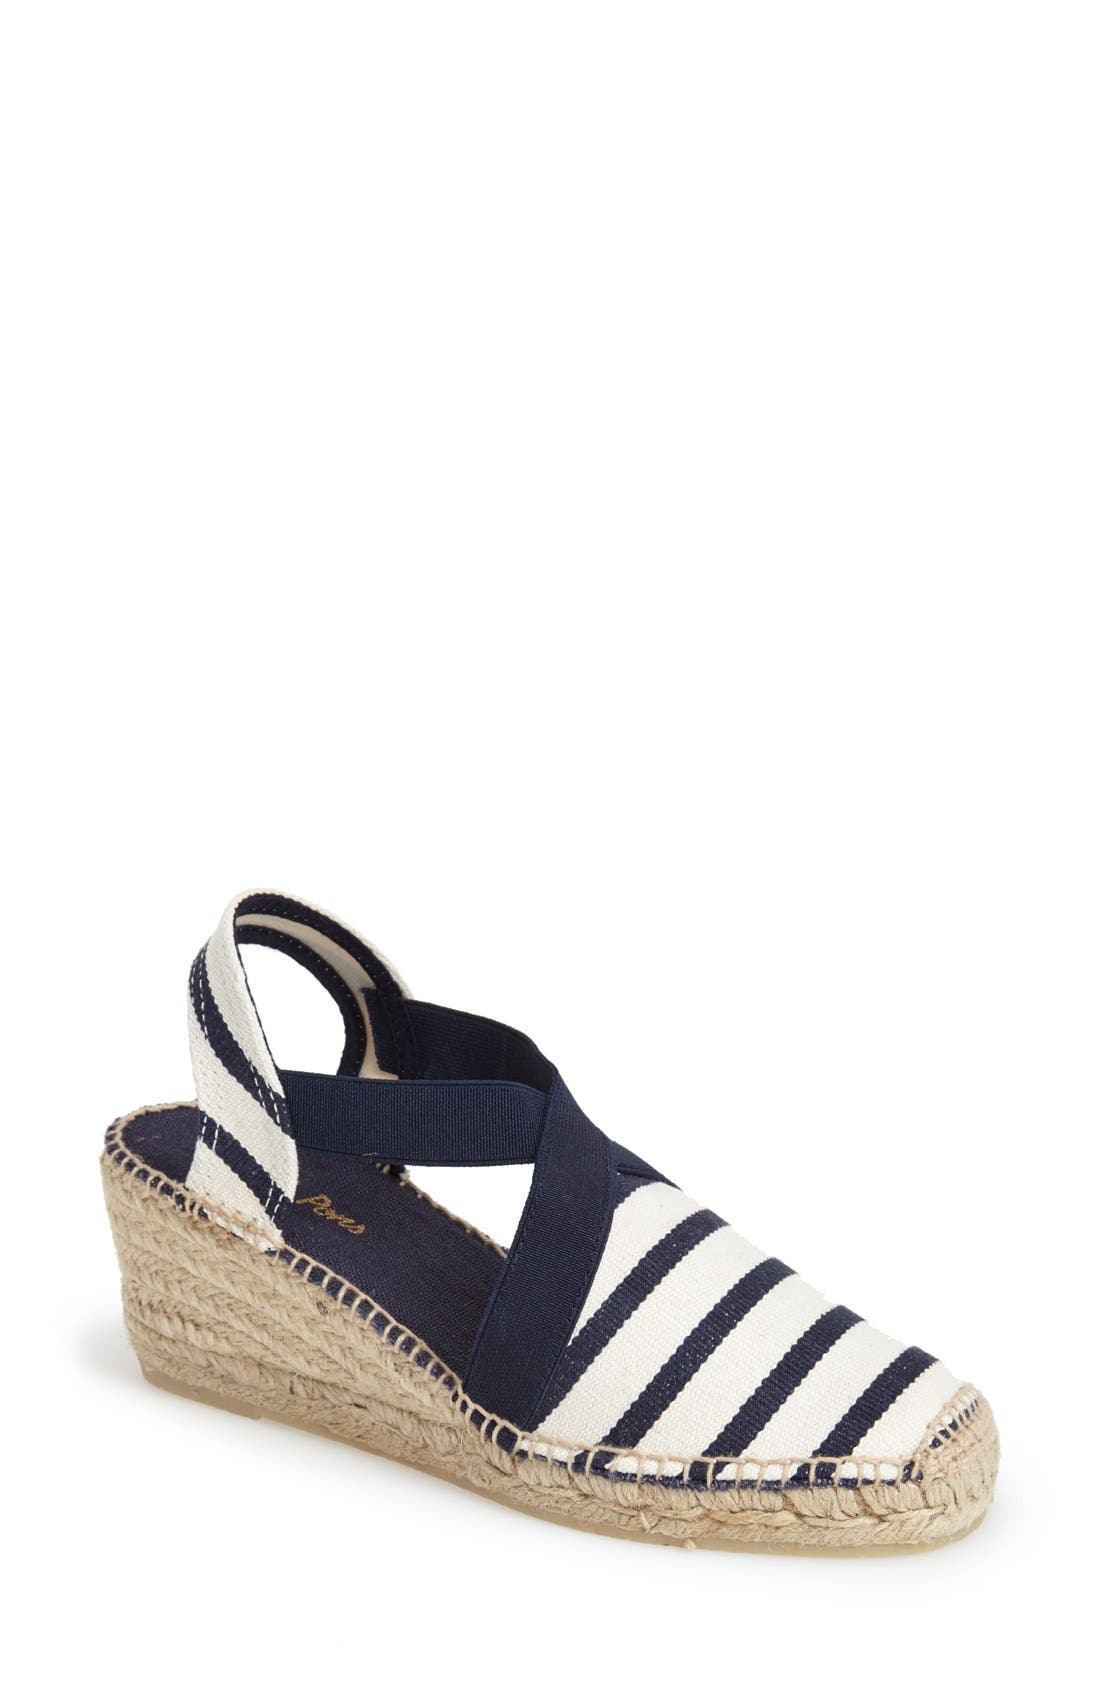 A slingback strap and bold espadrille heel heighten the earthy sophistication of a canvas sandal styled with crisp stripes. Style Name: Toni Pons \\\'Tarbes\\\' Espadrille Wedge Sandal (Women). Style Number: 1056900. Available in stores.